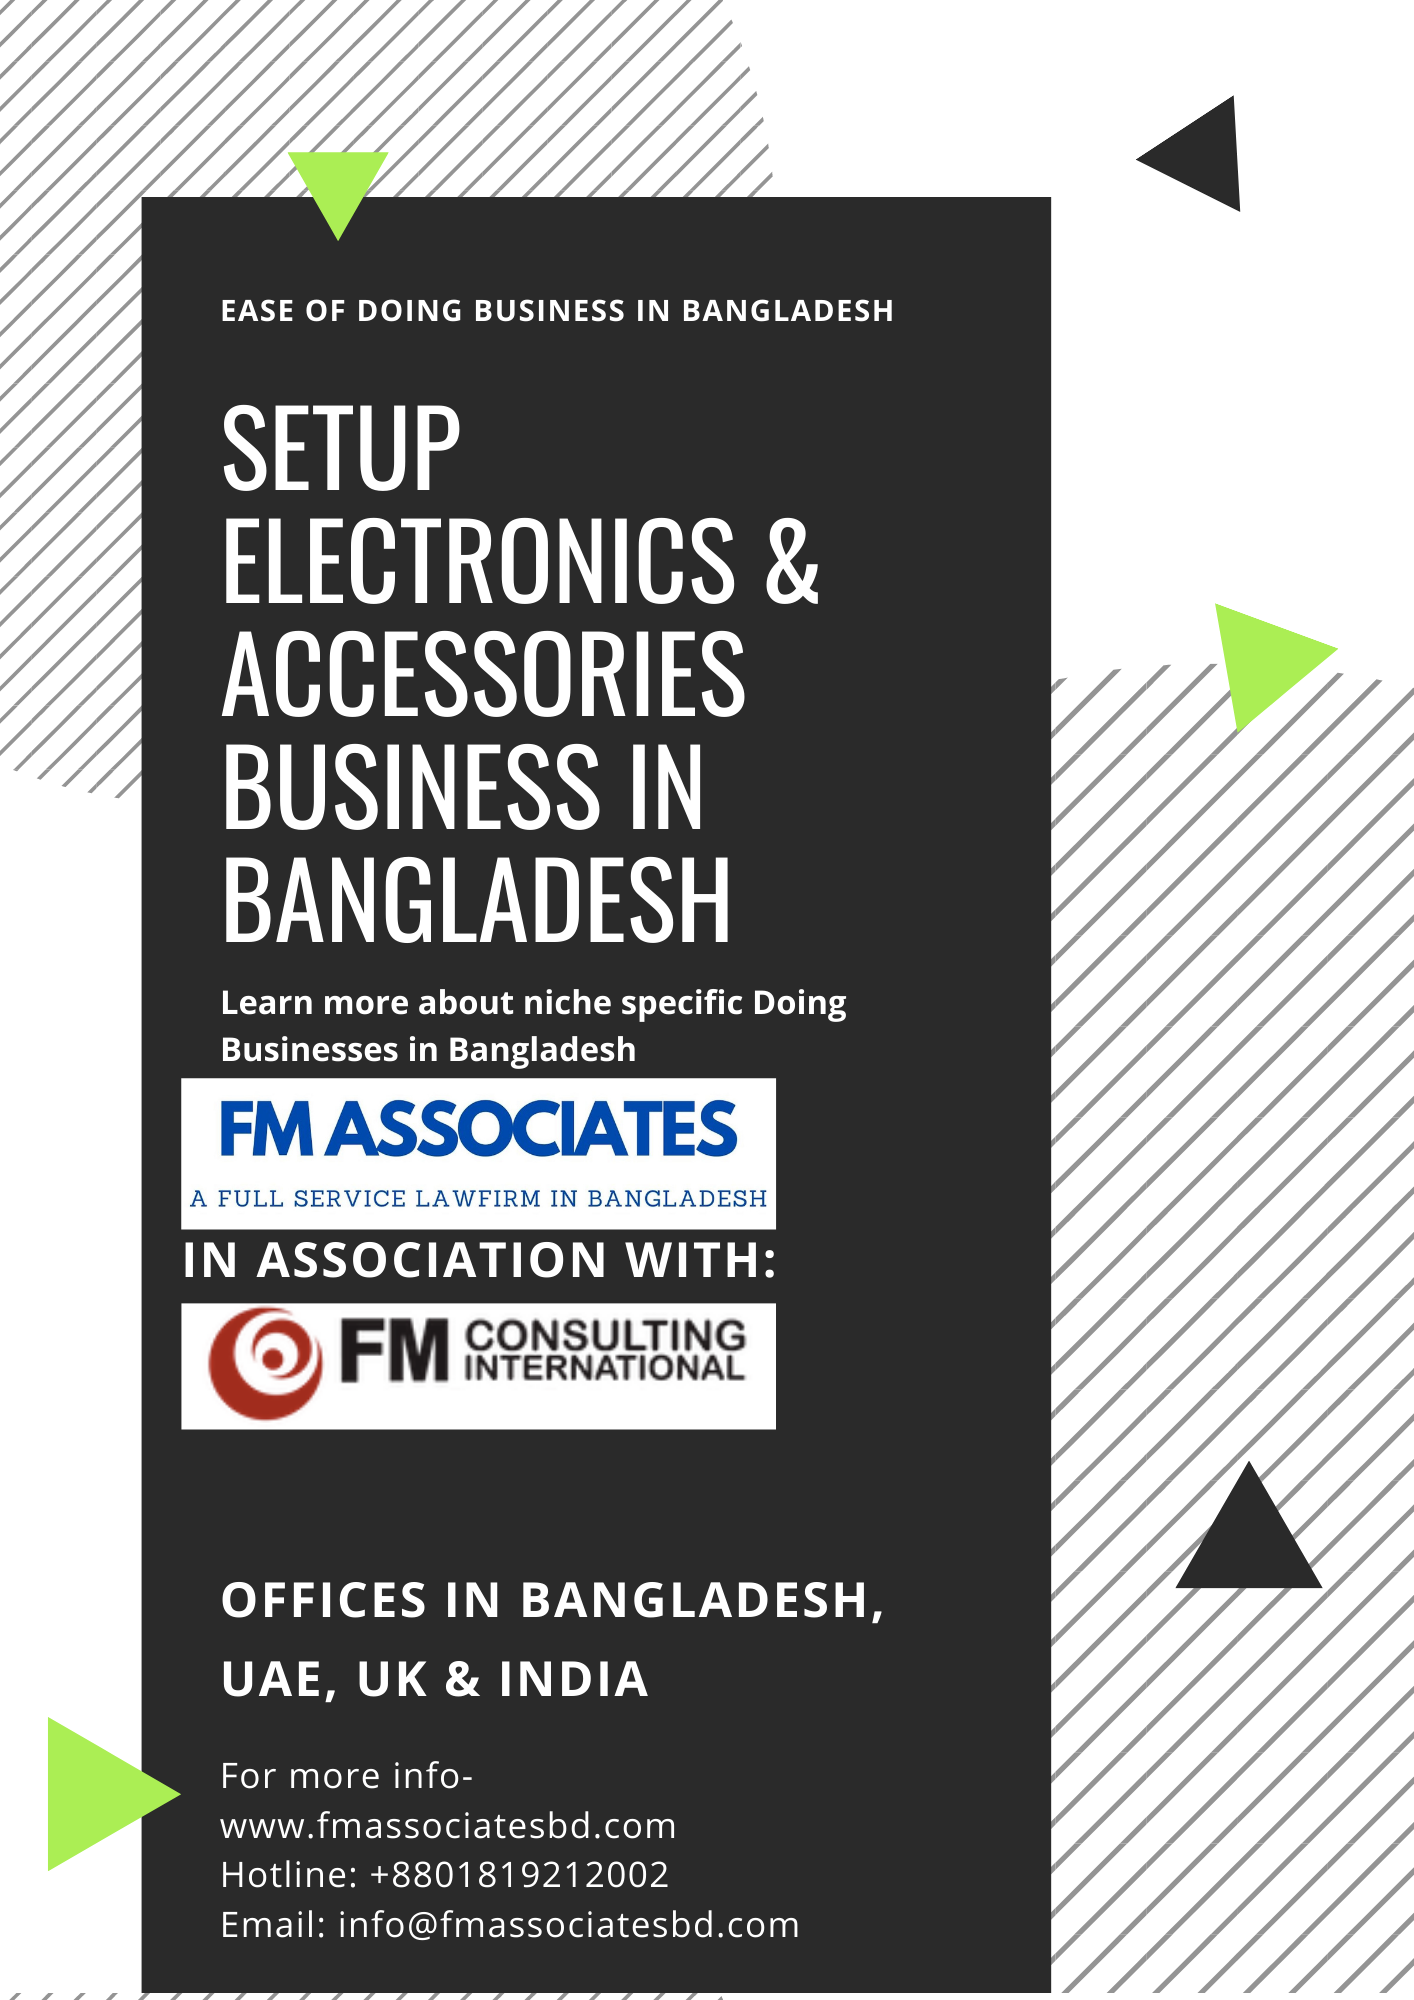 How to Setup Electronics & Accessories Business in Bangladesh